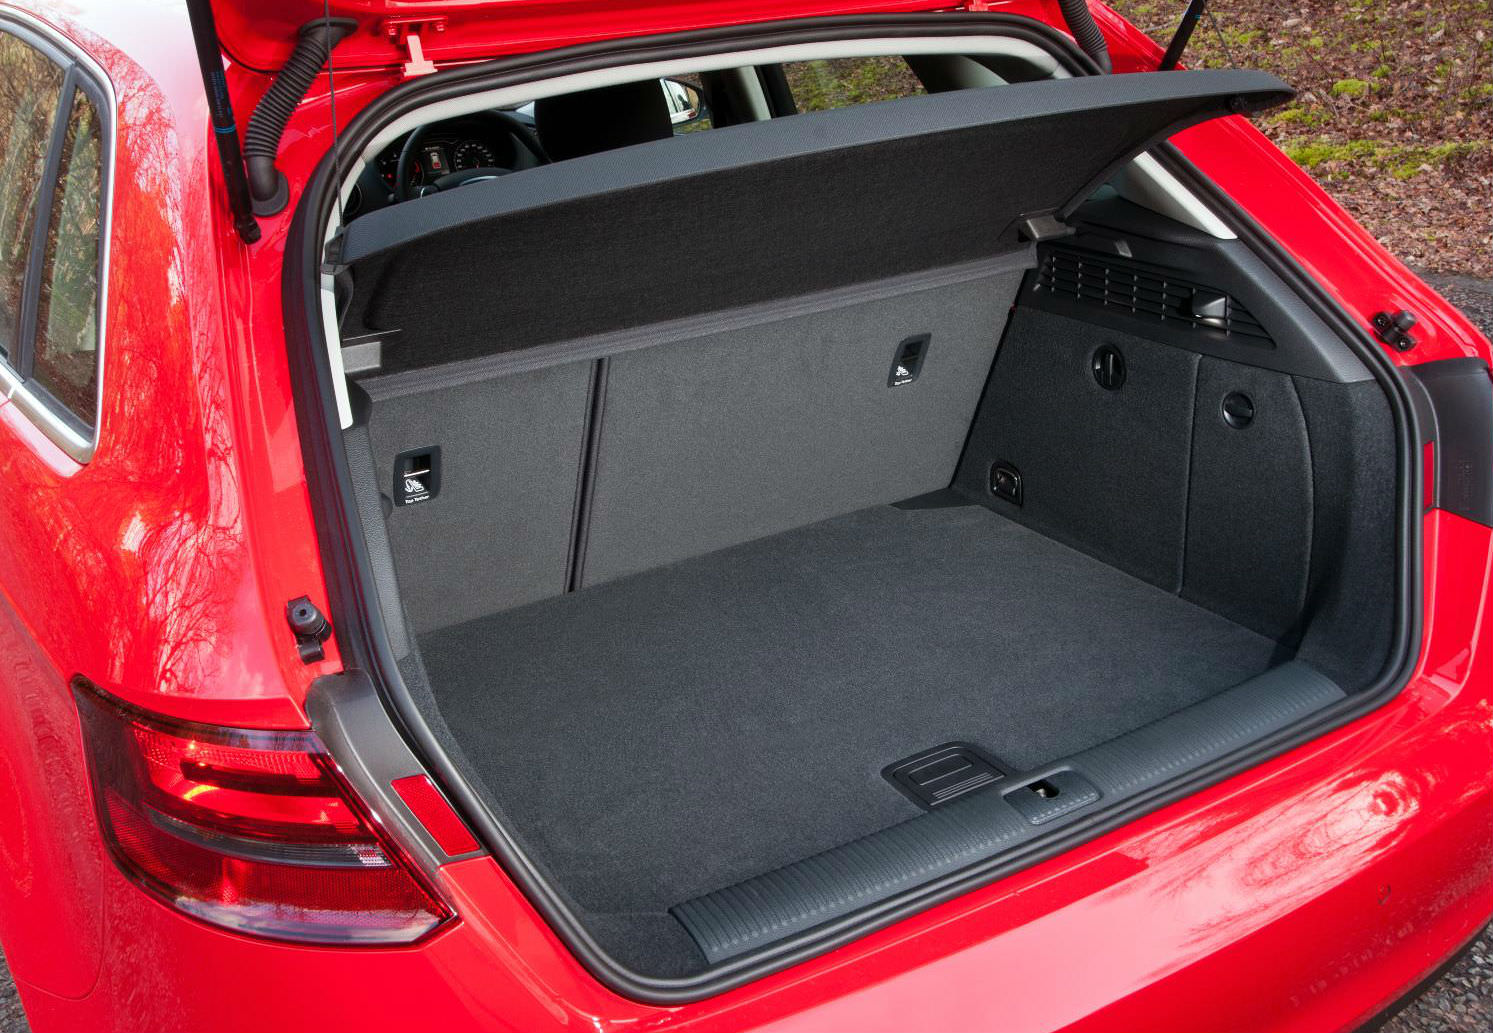 image of a red audi a3 sportback car exterior with boot open